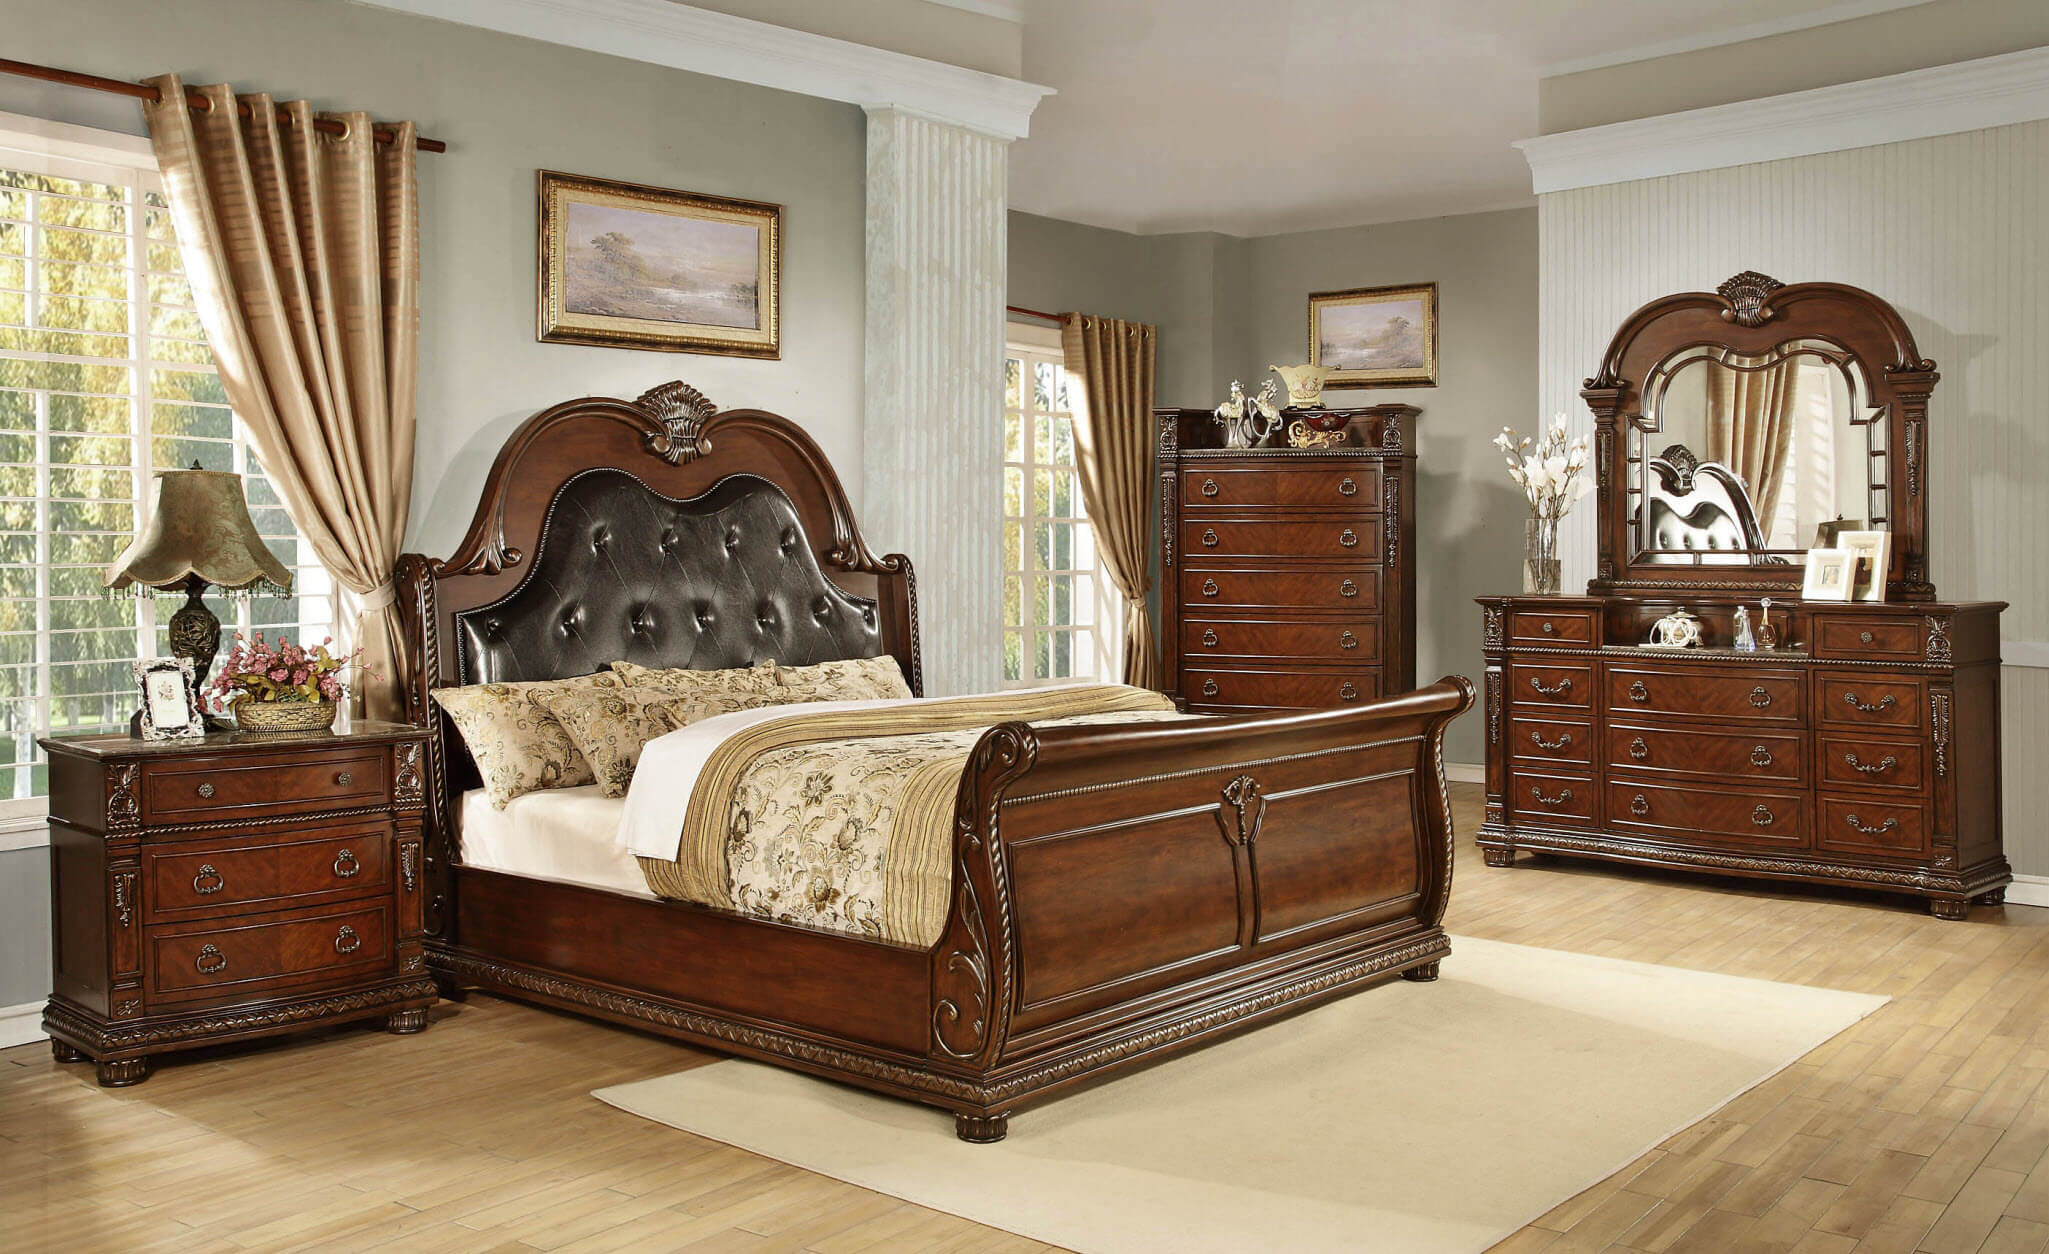 . B718 Palace Marble Top Bedroom Set by Global Trading